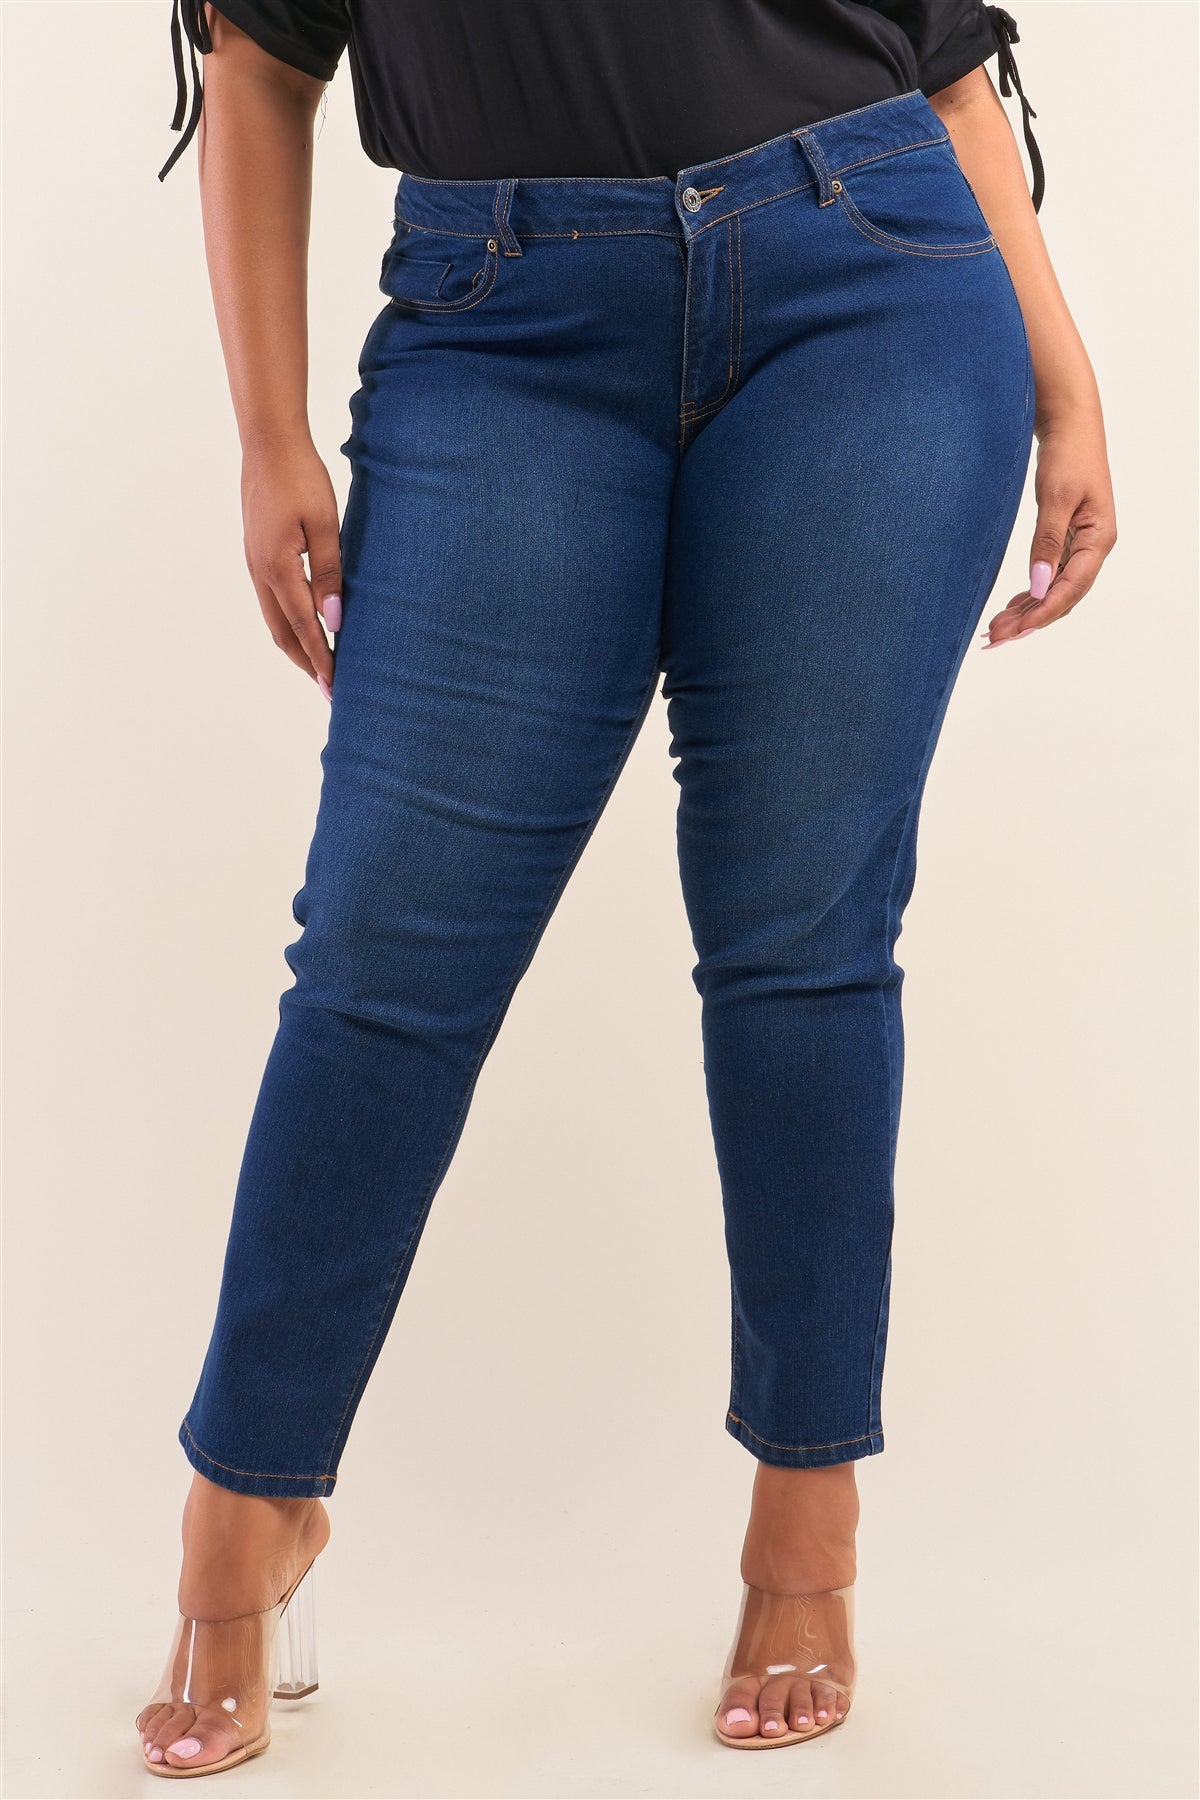 Plus Size Low-mid Rise Straight Cut Denim Pants - Kendalls Deals